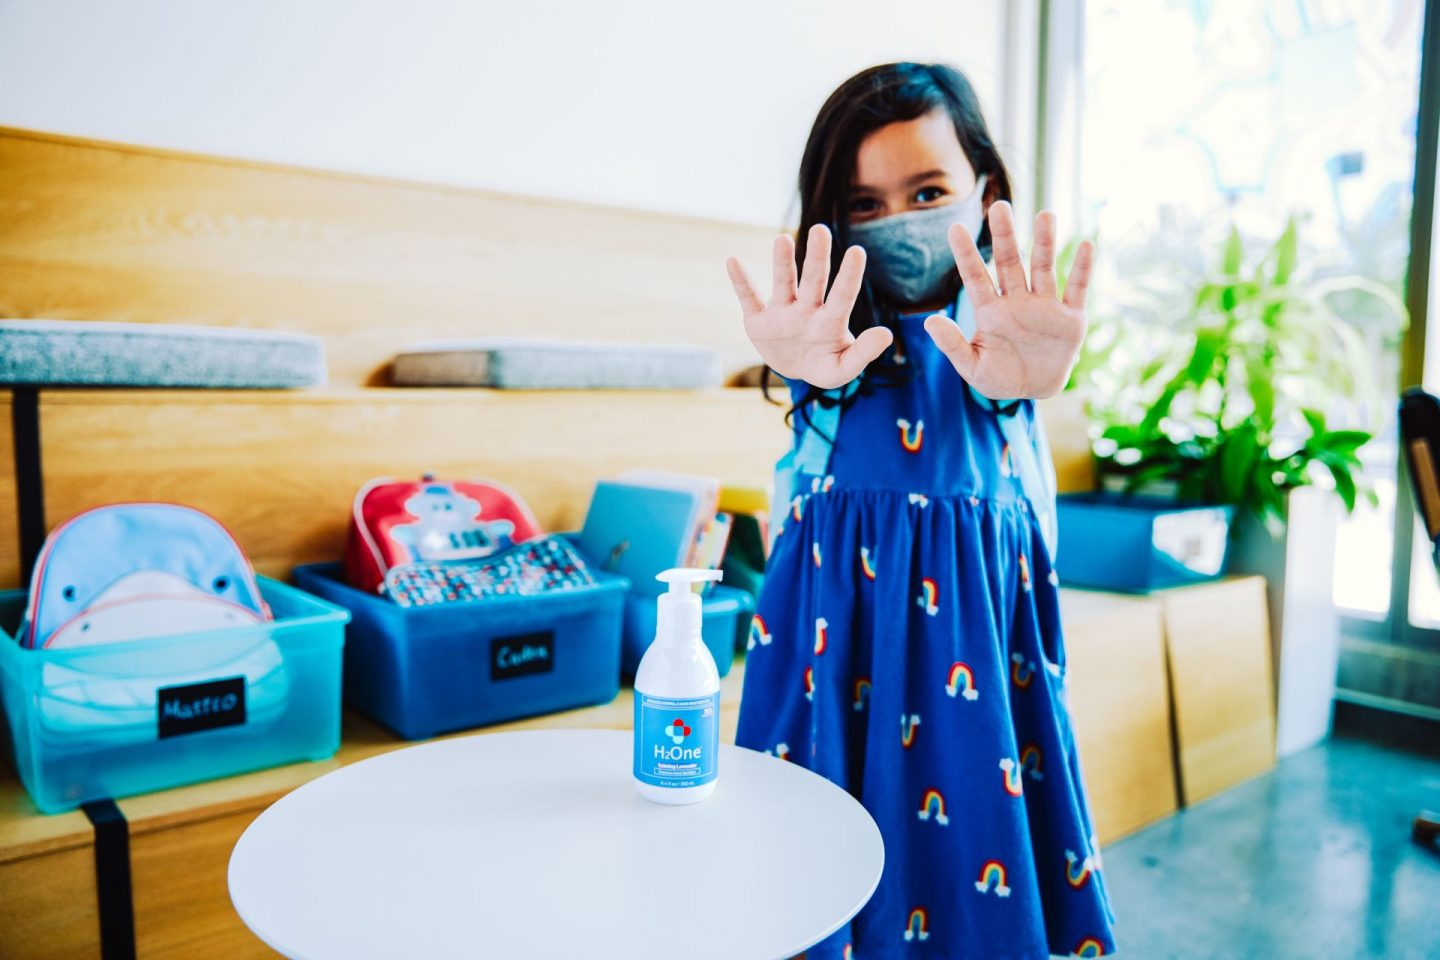 H2One Hand Sanitizer Hits a Home Run for Bronx Kids!